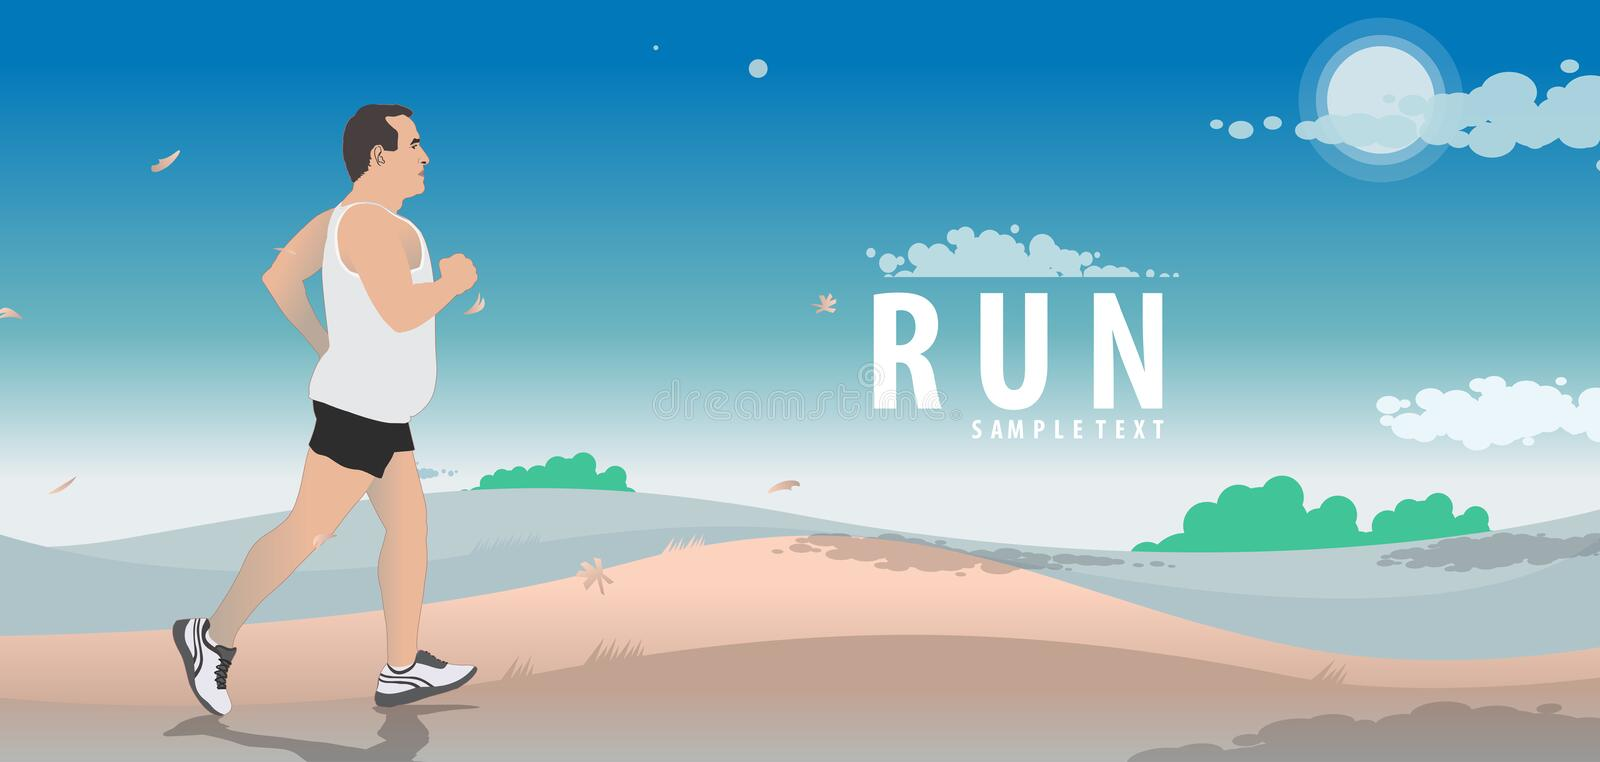 Run logo, emblem with abstract running people silhouettes, marathon and healthy lifestyle vector stock illustration